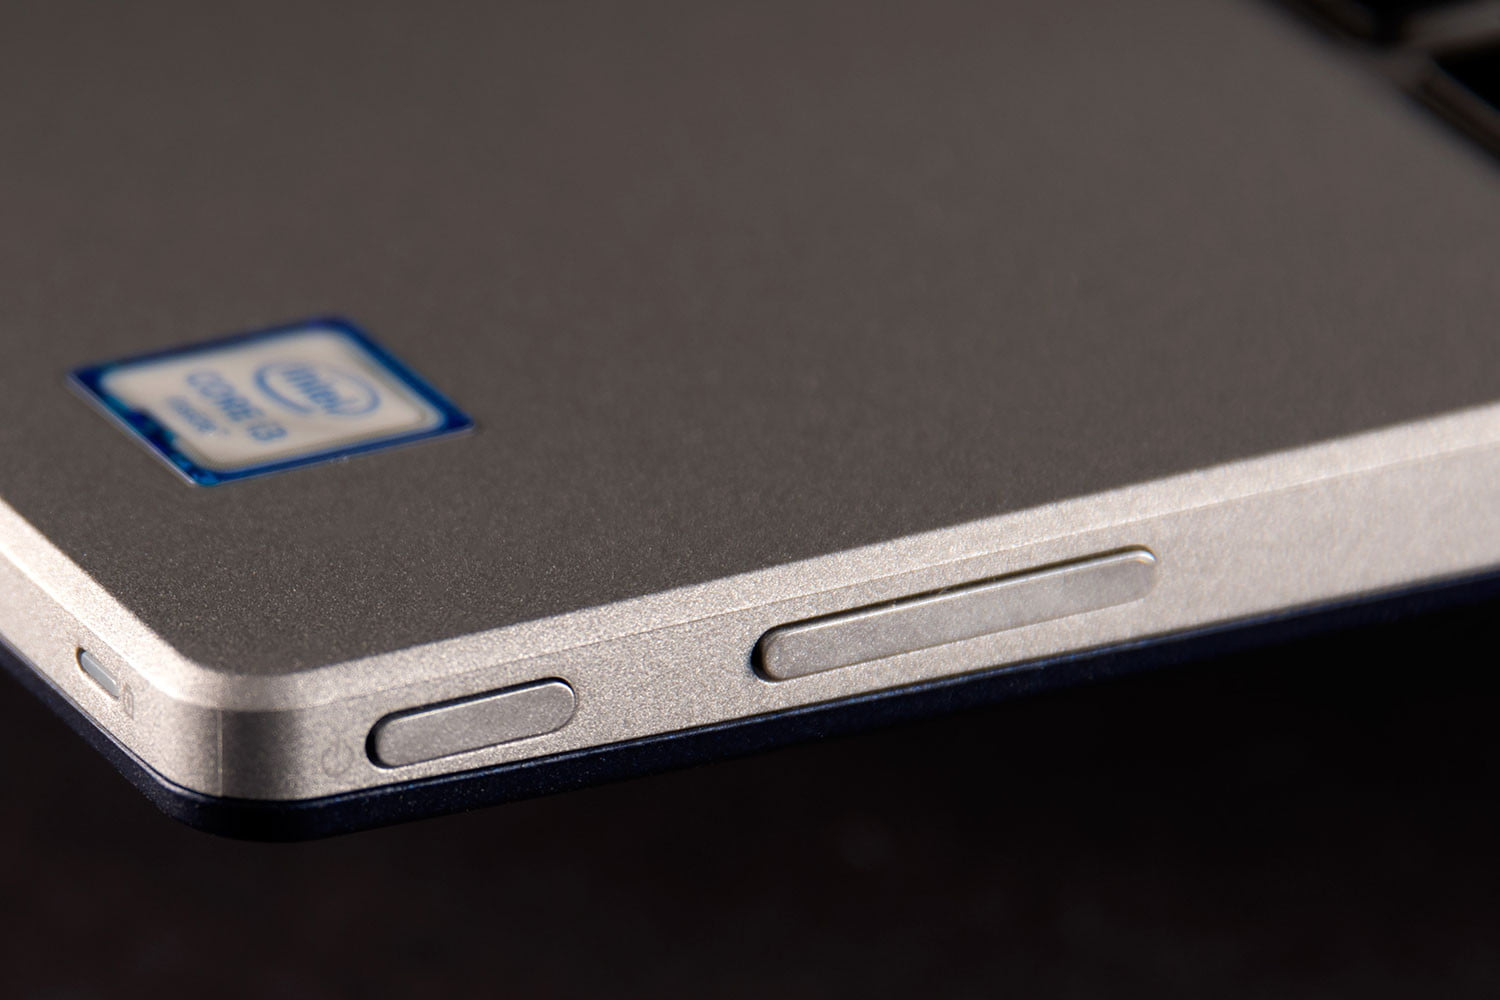 Dell Inspiron 11 3000 Series 2-in-1 Special Edition Review